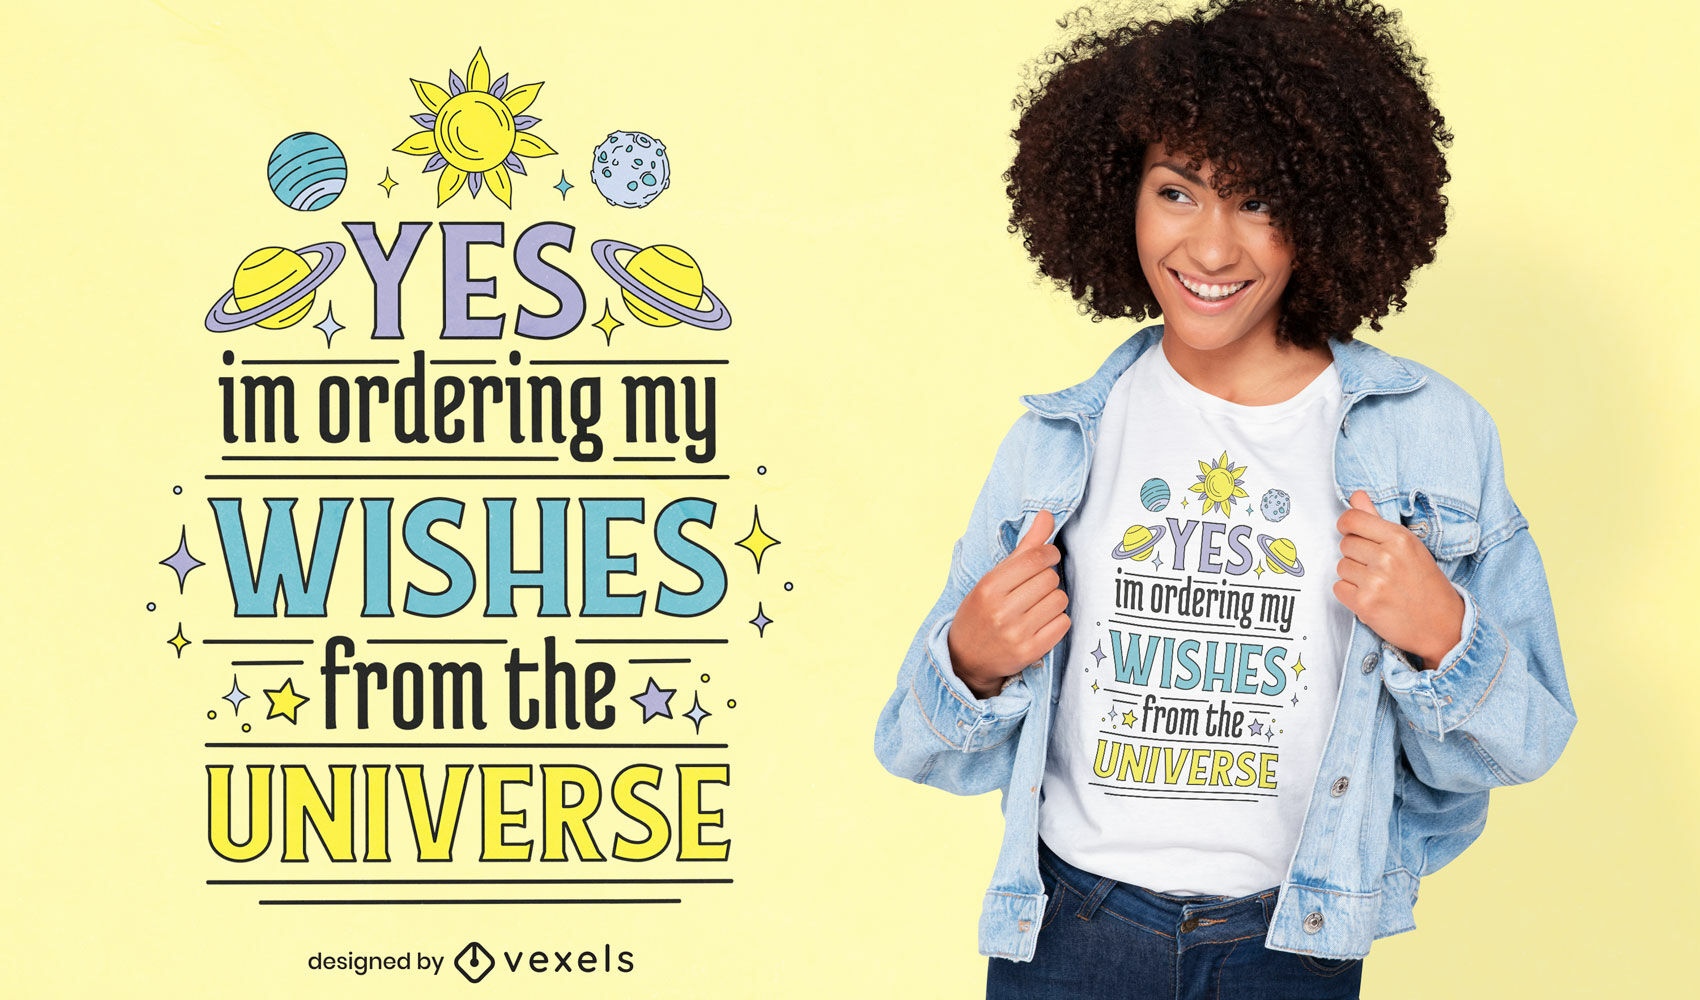 Universe wishes quote t-shirt design